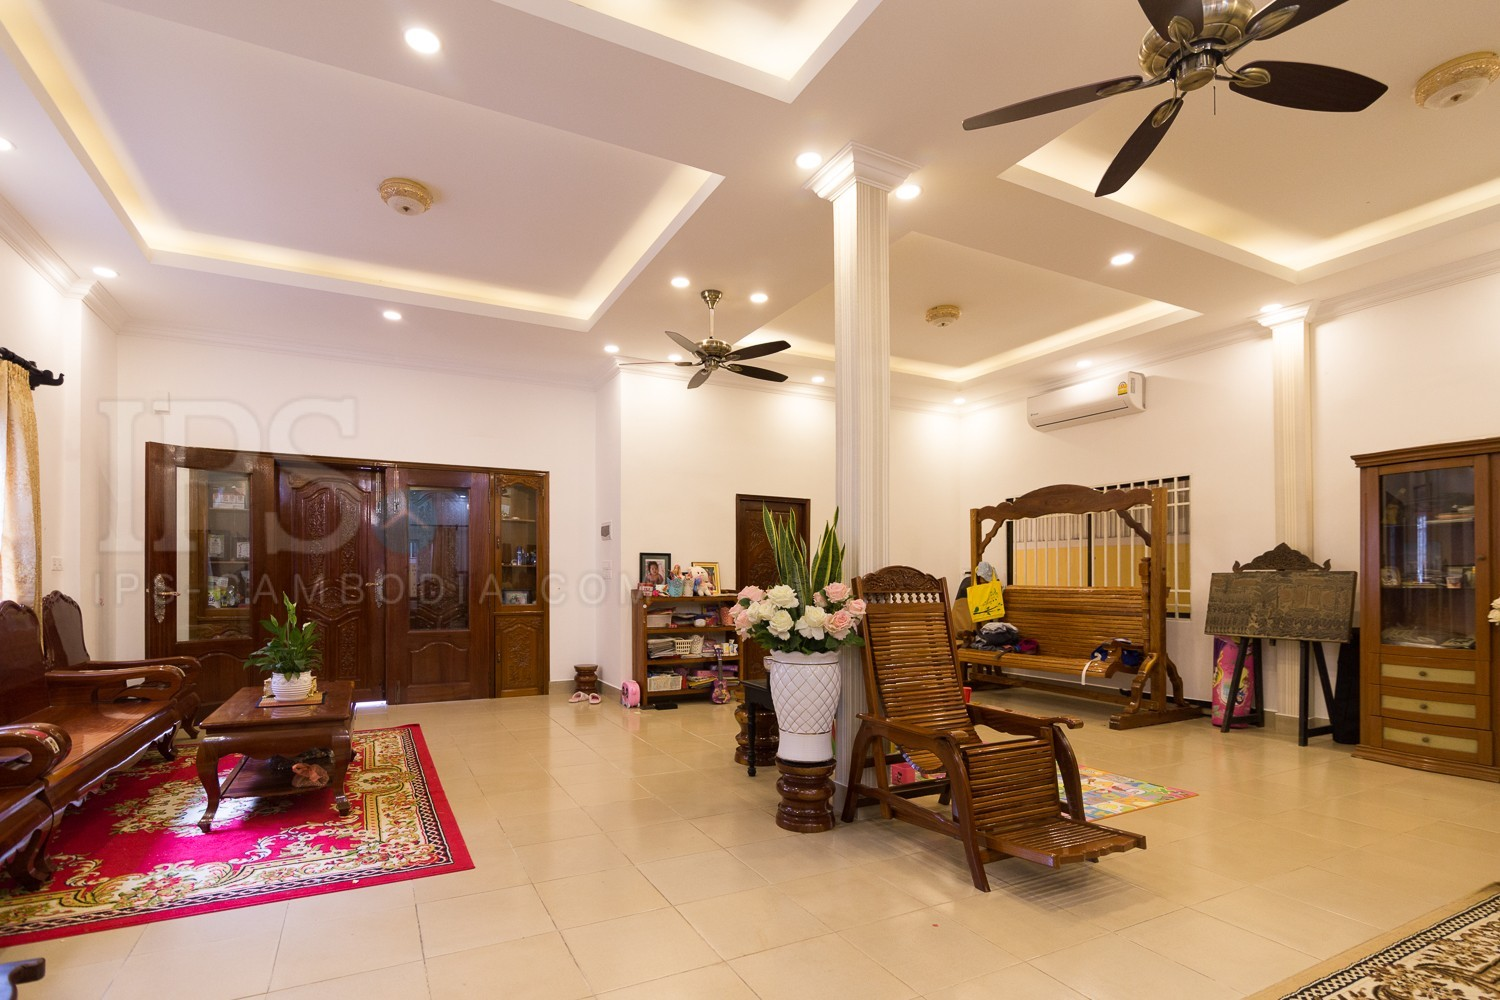 Commercial villa For Rent   - Tuol Tom Pong